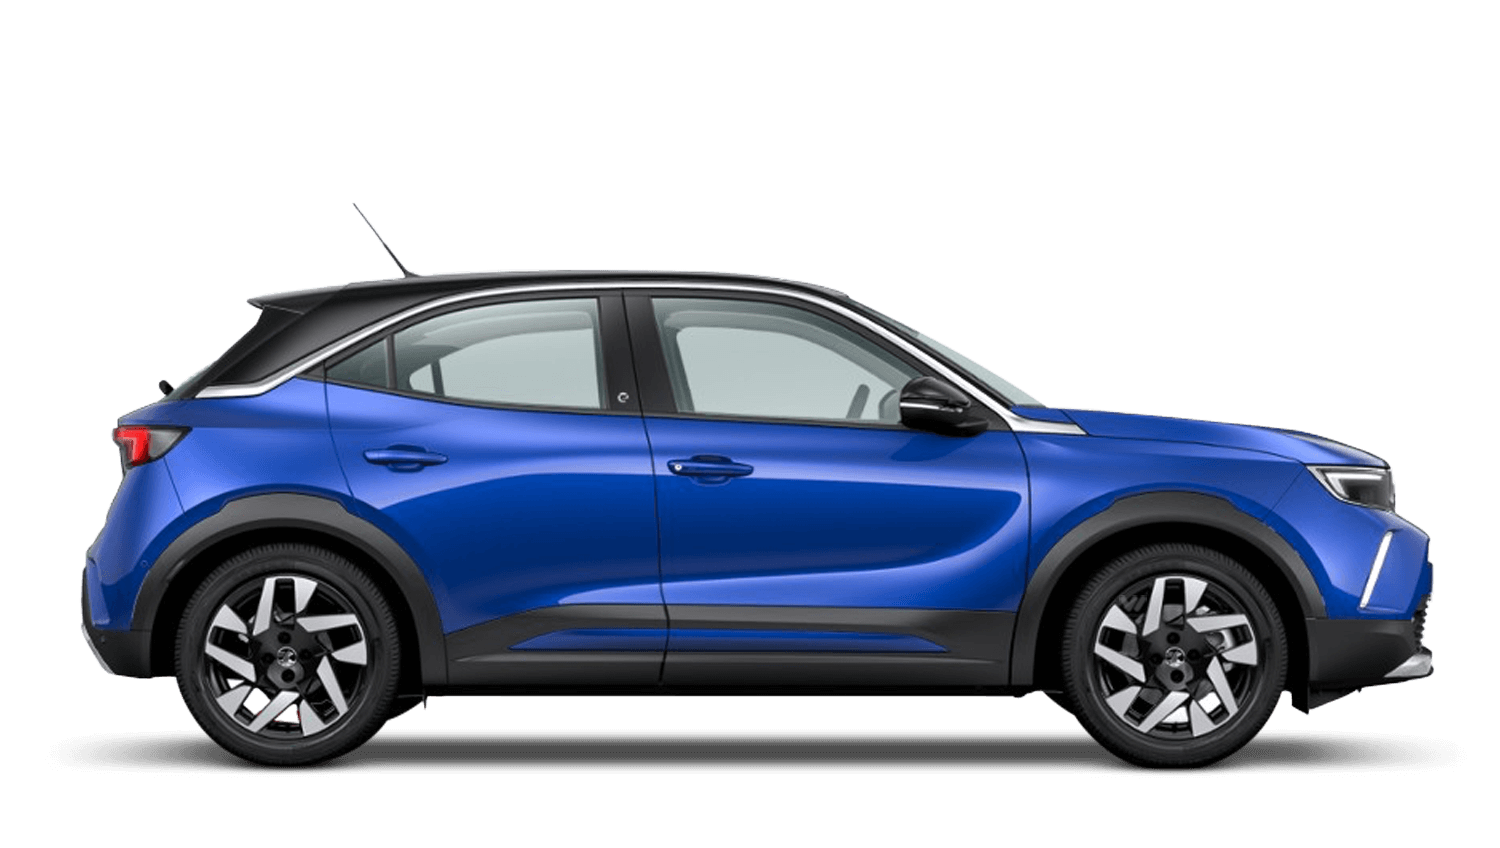 Voltaic Blue (Metallic) All-New Vauxhall Mokka-e